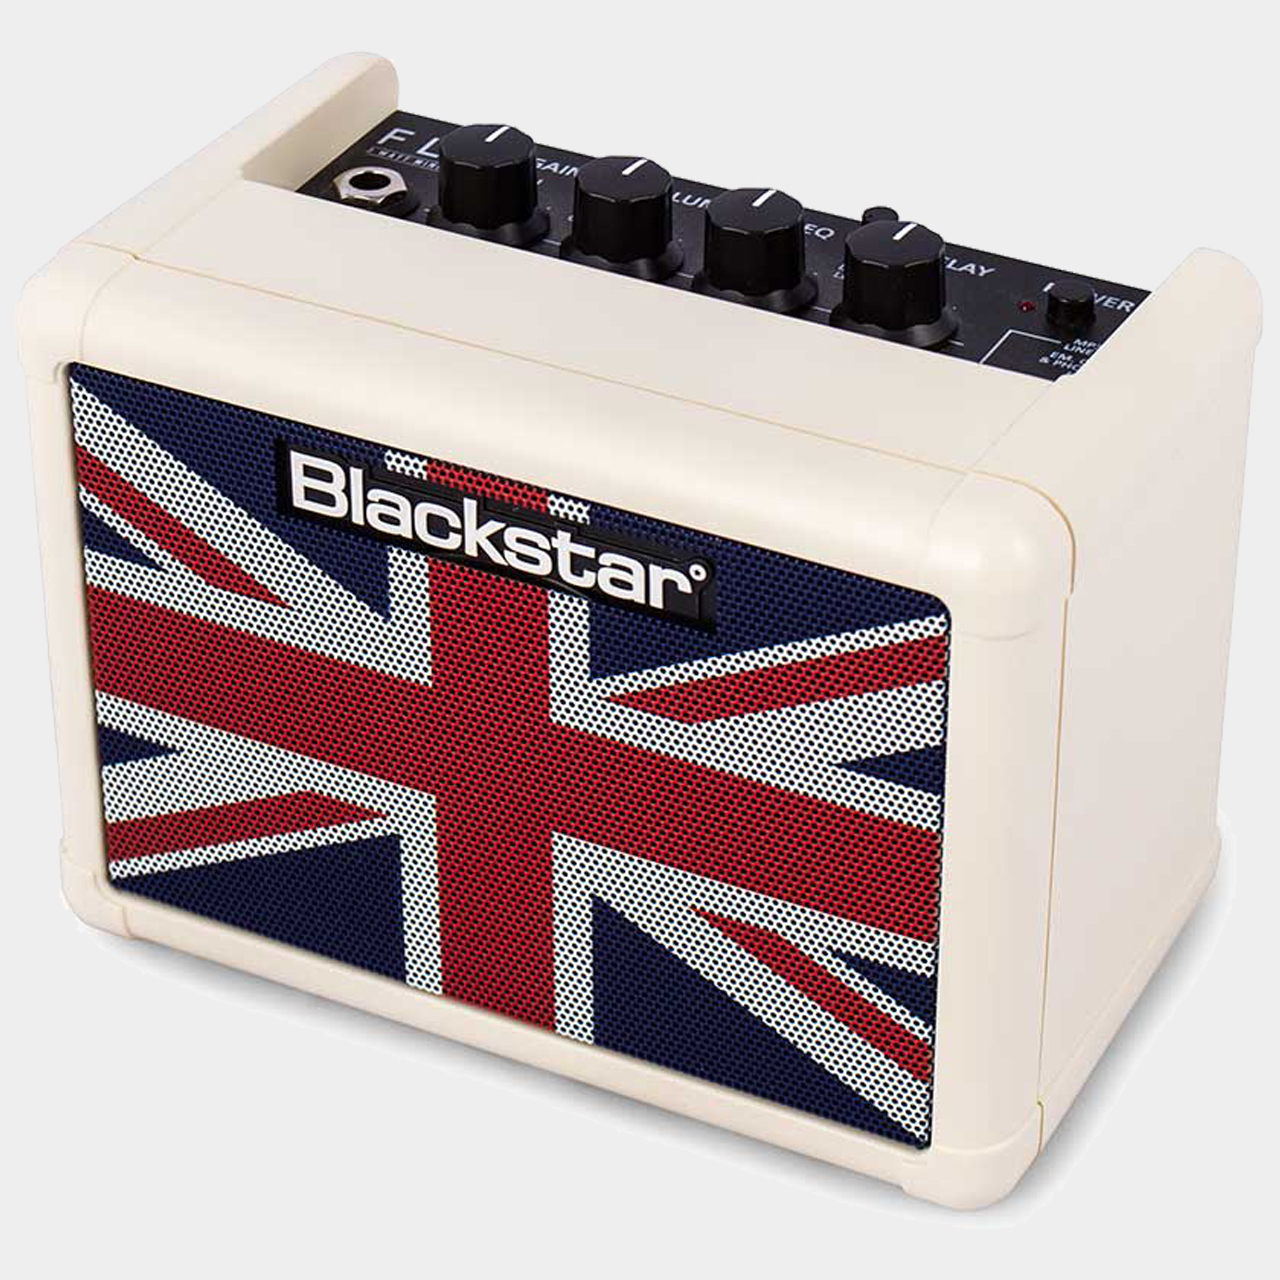 BLACKSTAR Fly 3 Union Jack Limited Edition